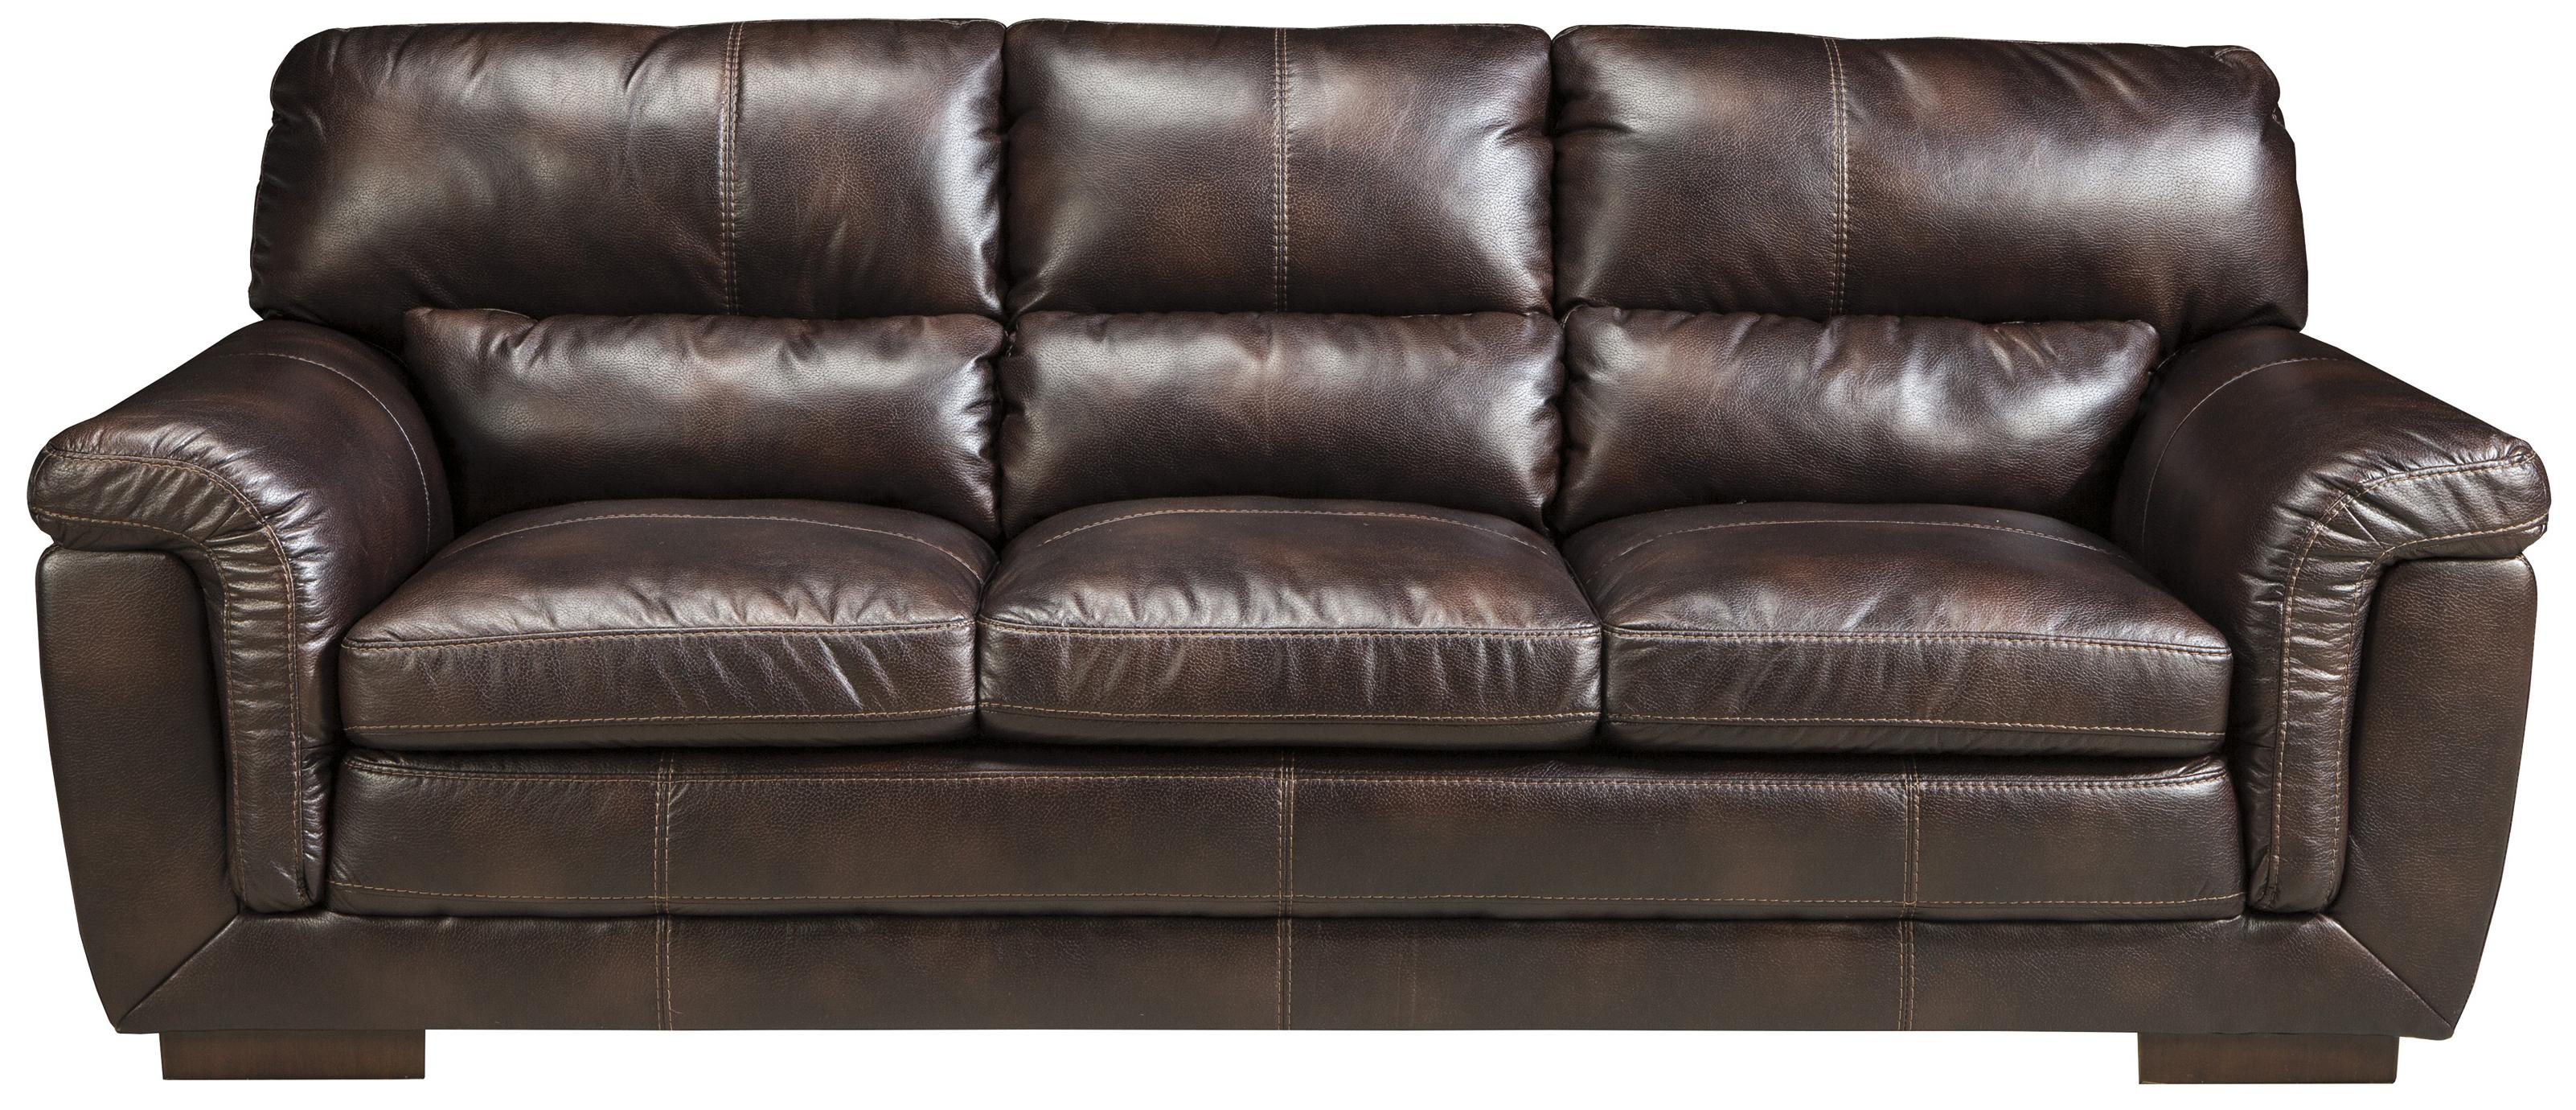 zelladore canyon faux leather sofa by ashley furniture